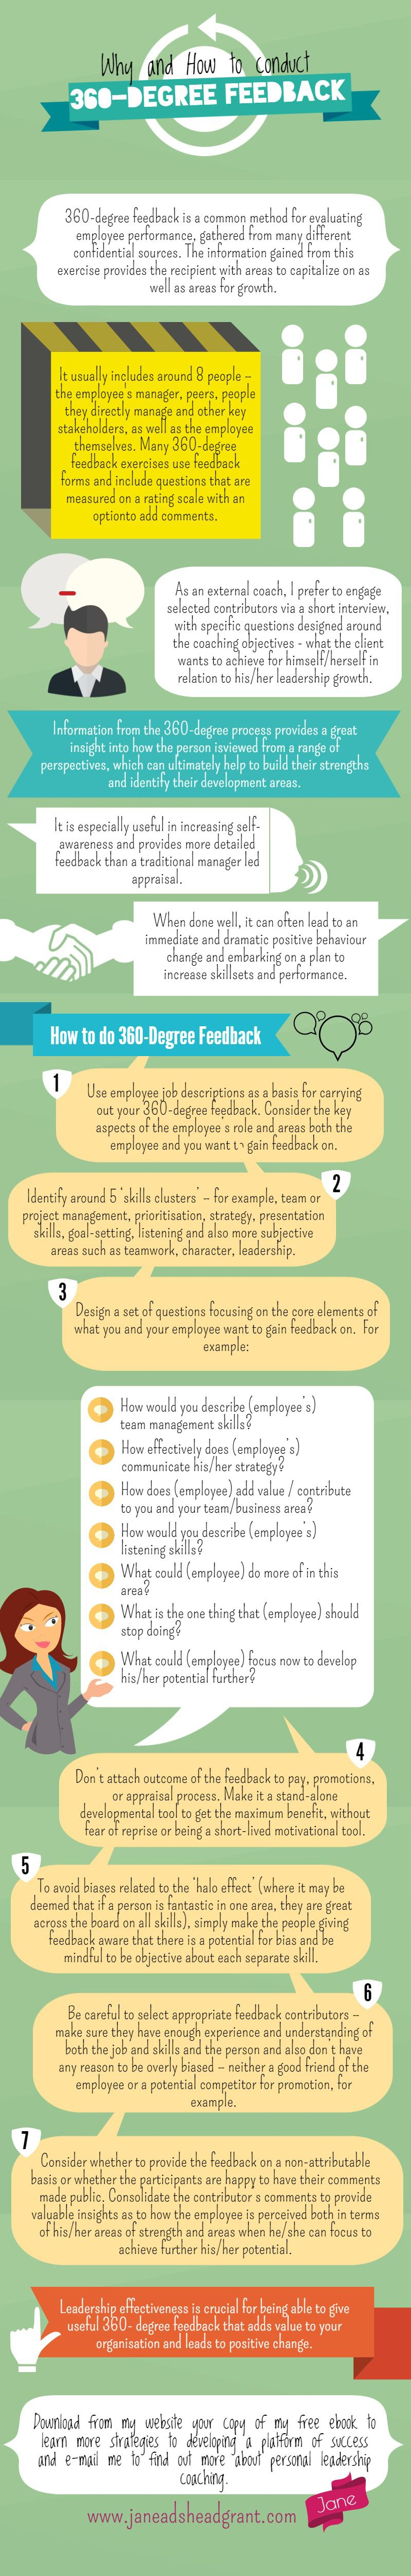 360 Degree Feedback Infographic 360 Degree Feedback Business Classes Business Management Degree